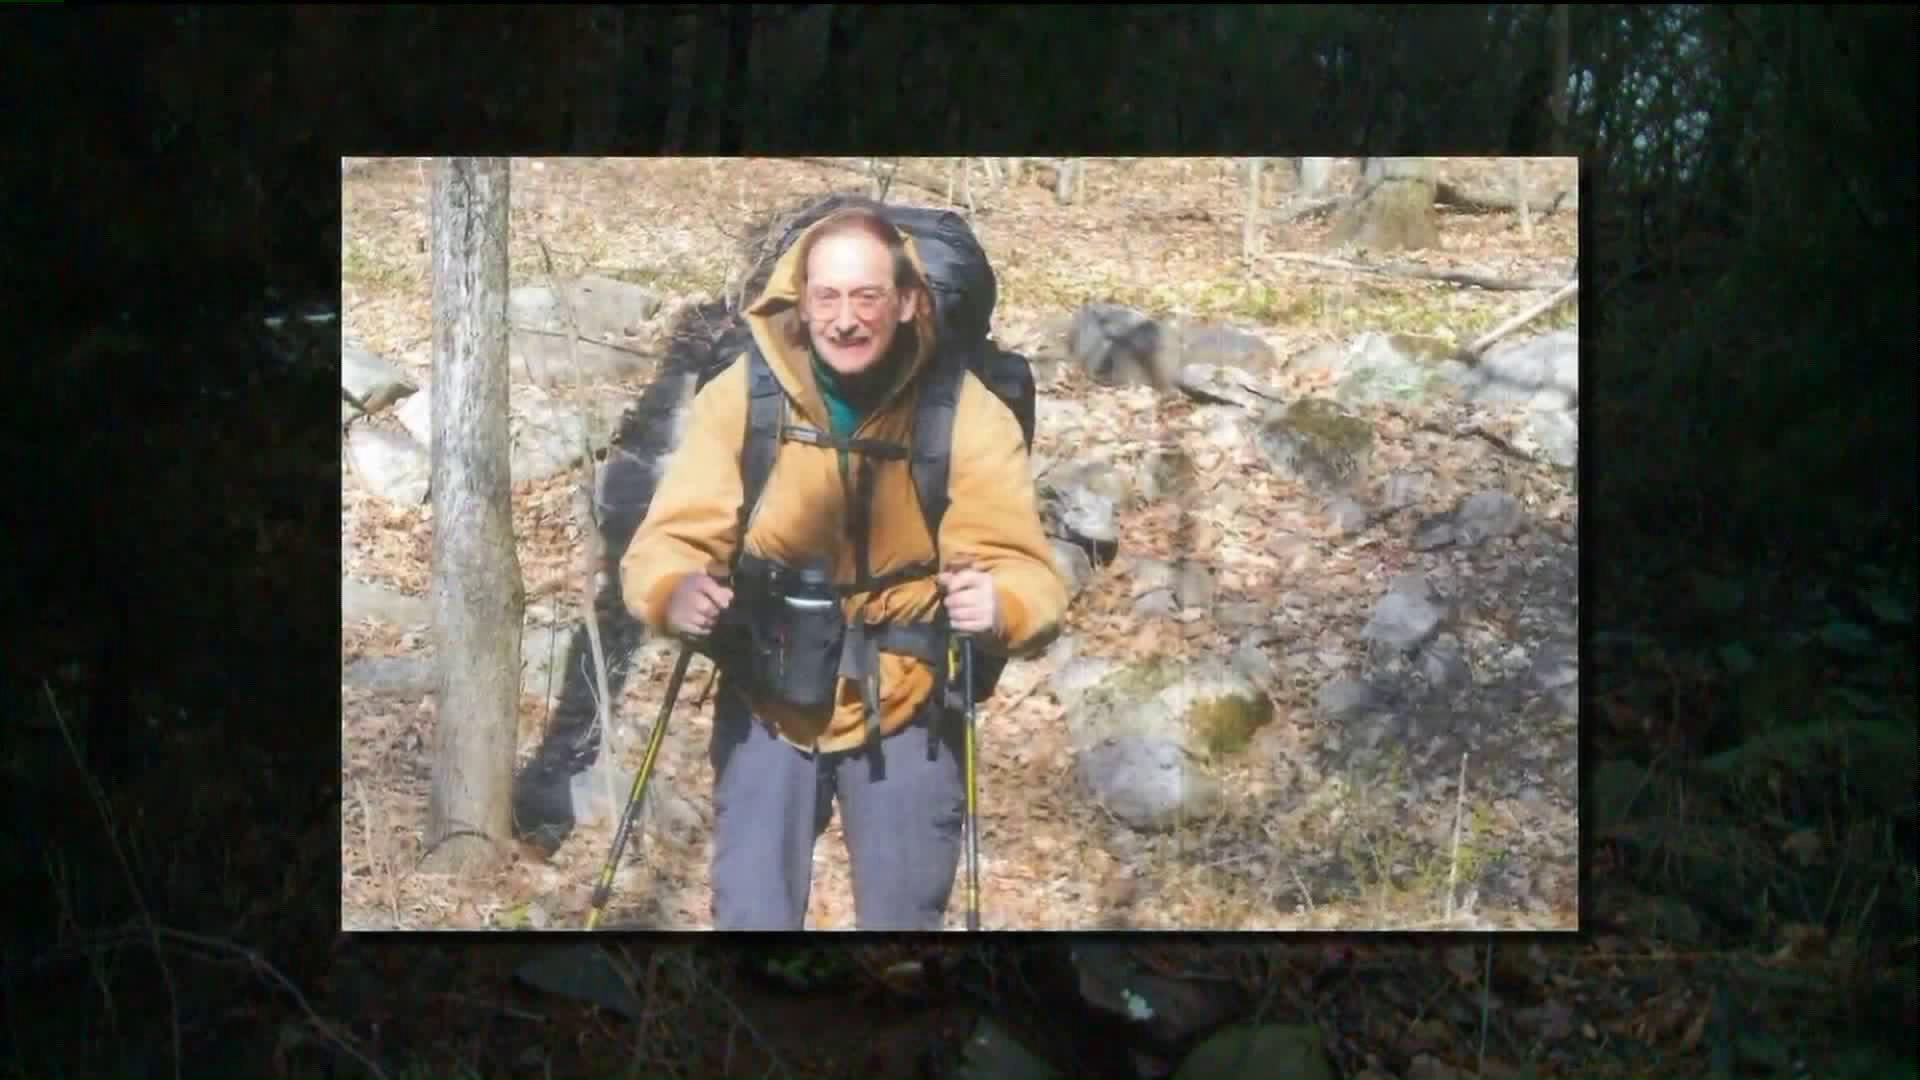 Connecticut Hiker Missing for Days Found Dead, Police Say